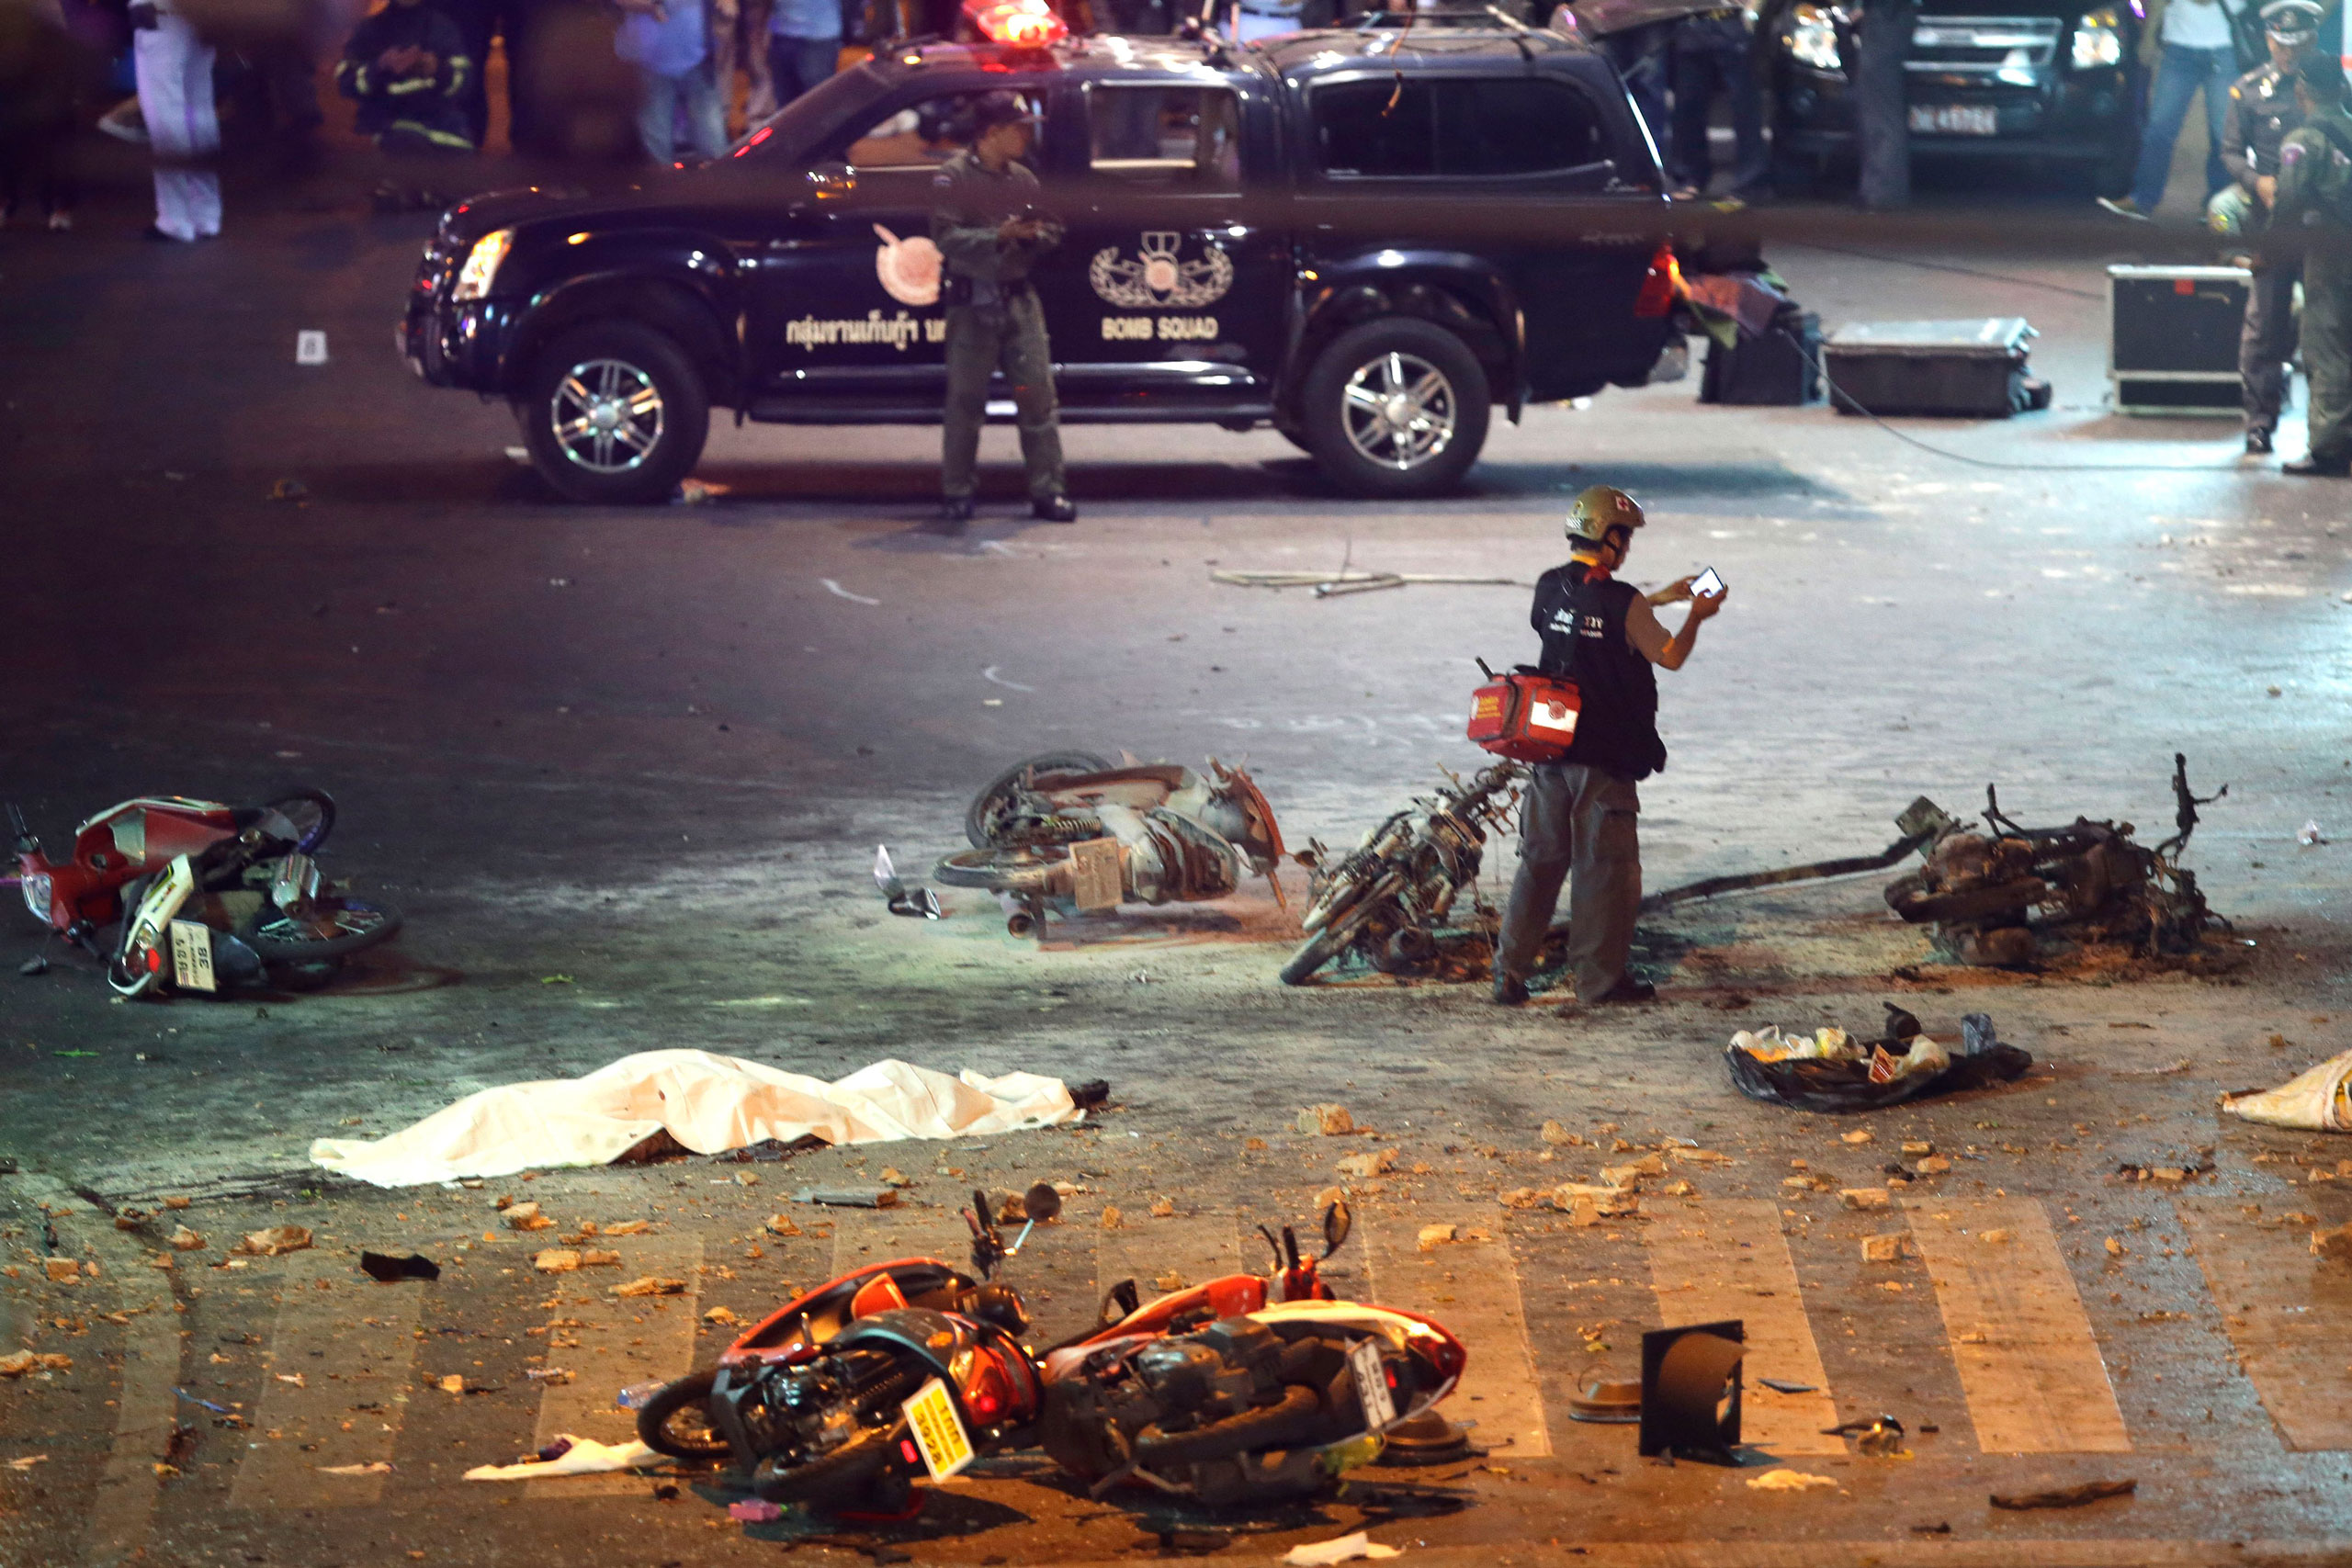 A policeman photographs debris from an explosion in central Bangkok, Thailand, on Aug. 17, 2015.